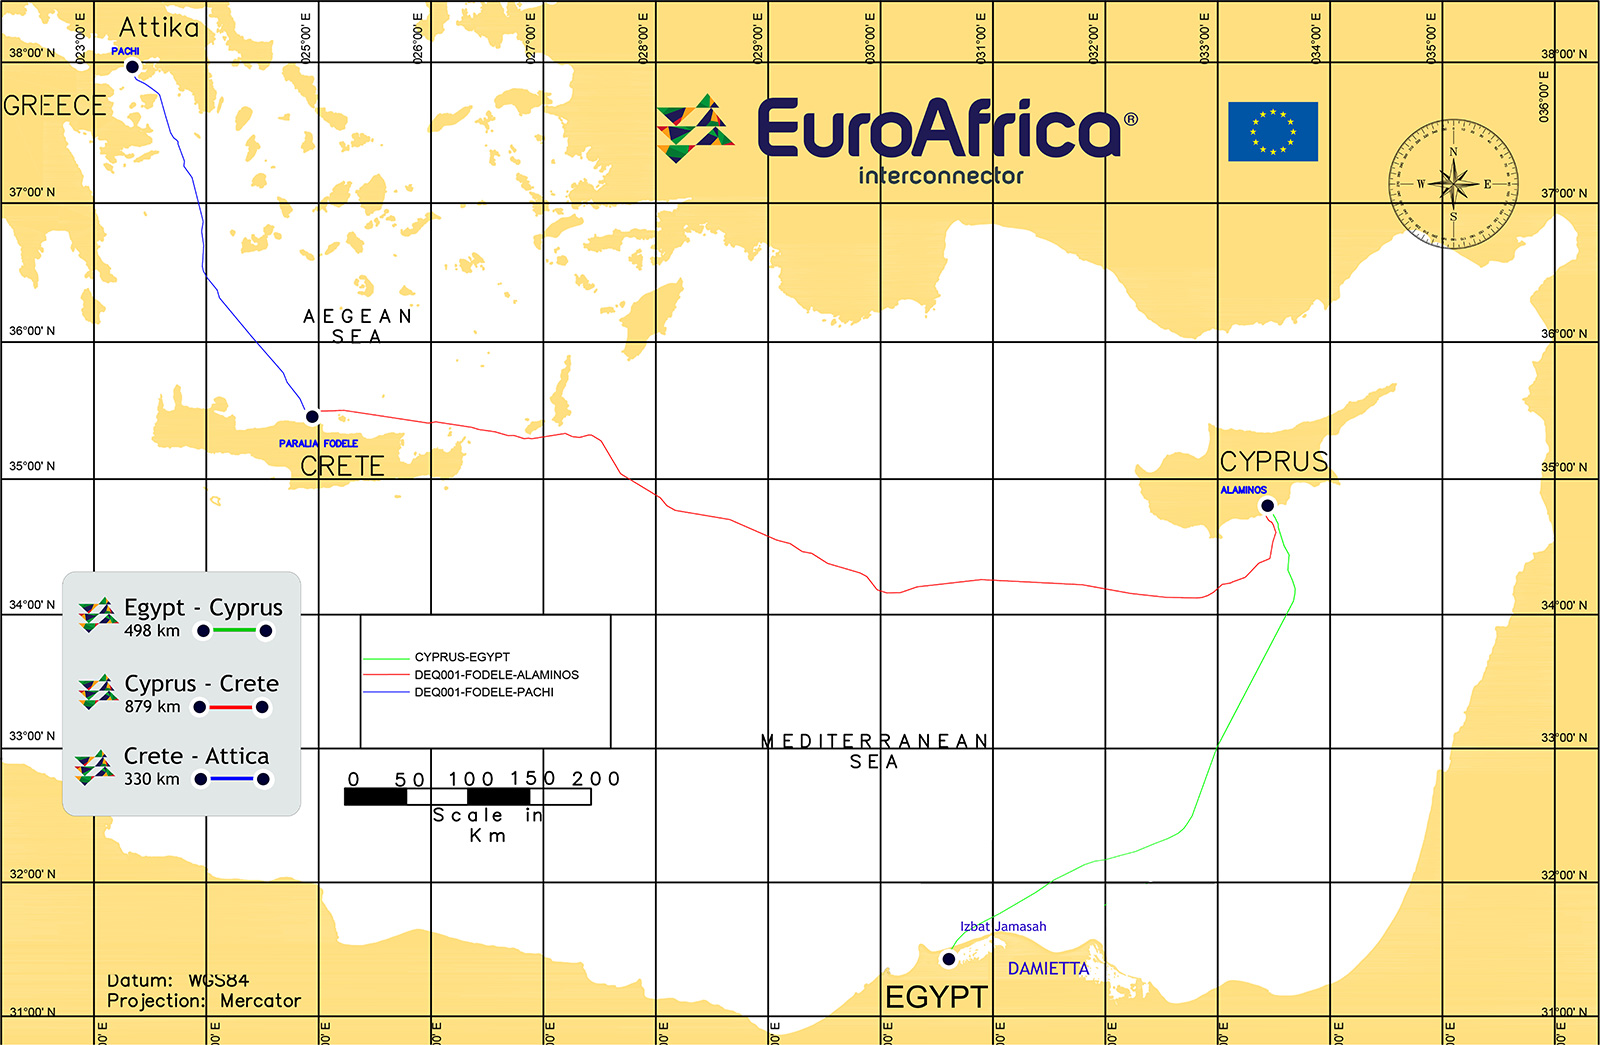 EuroAfrica Interconnector route